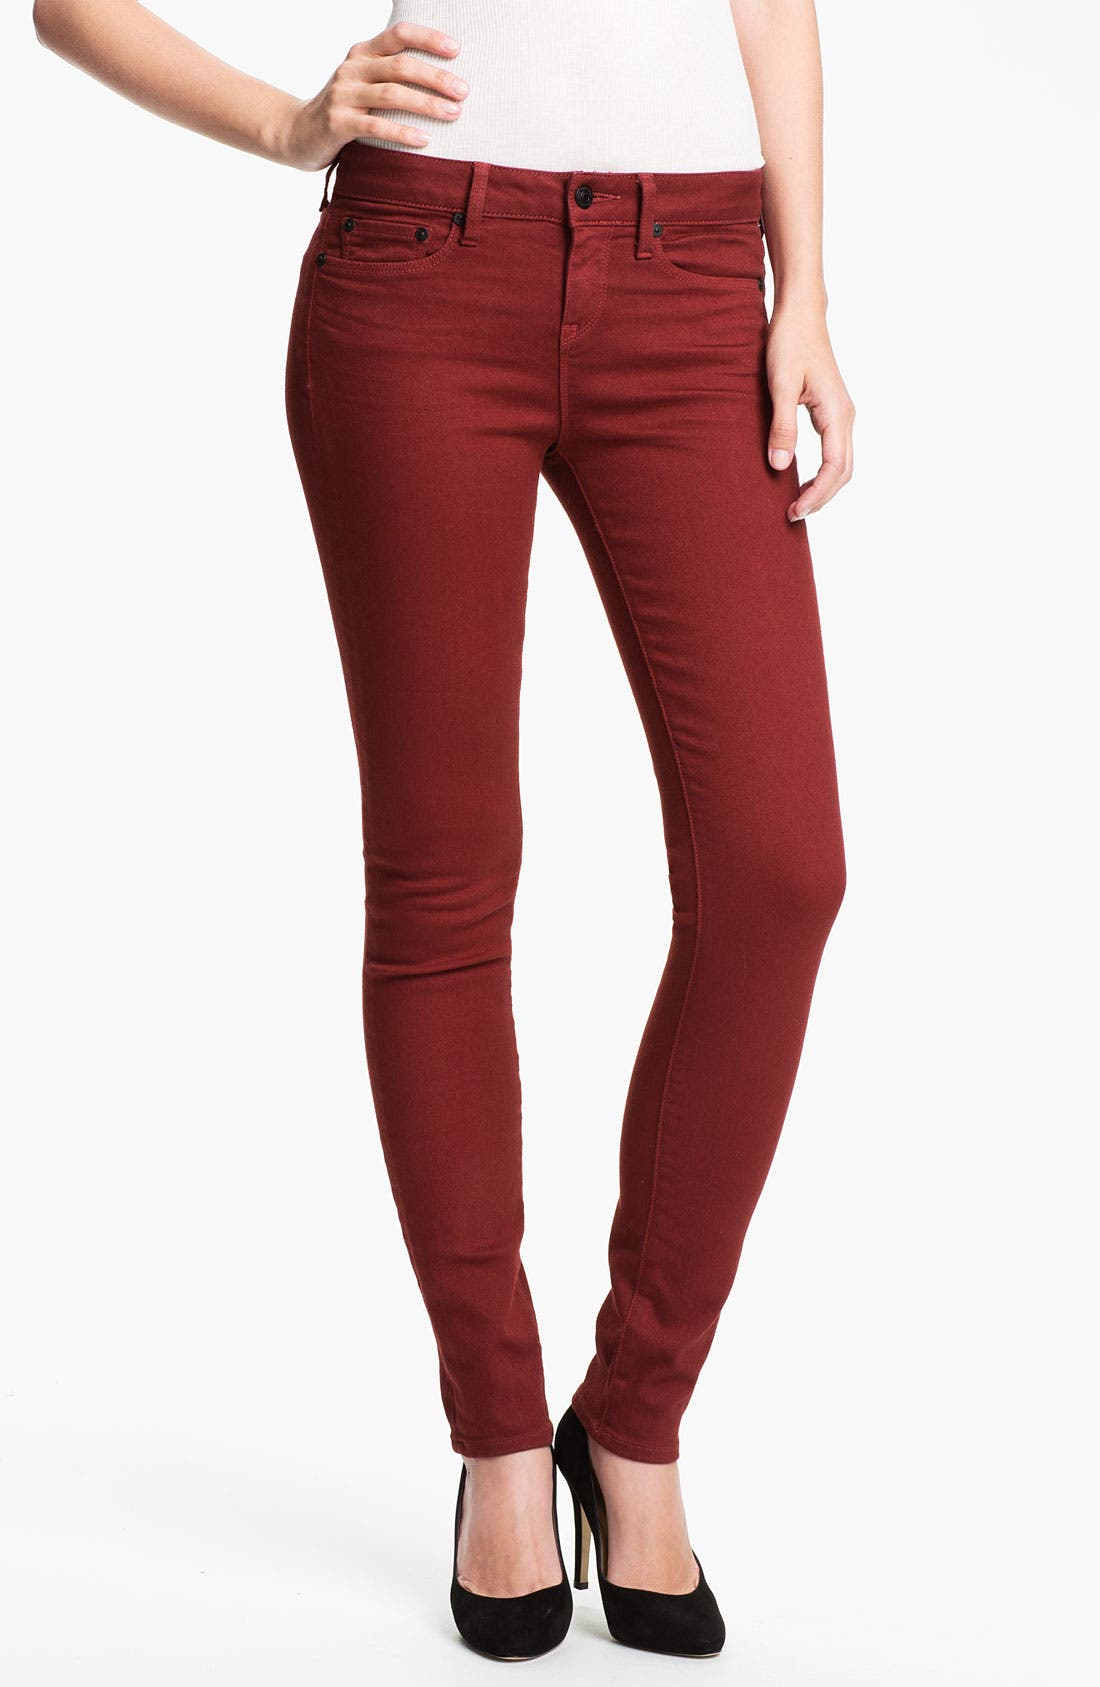 Alternate Image 1 Selected - Vince Colored Stretch Skinny Jeans